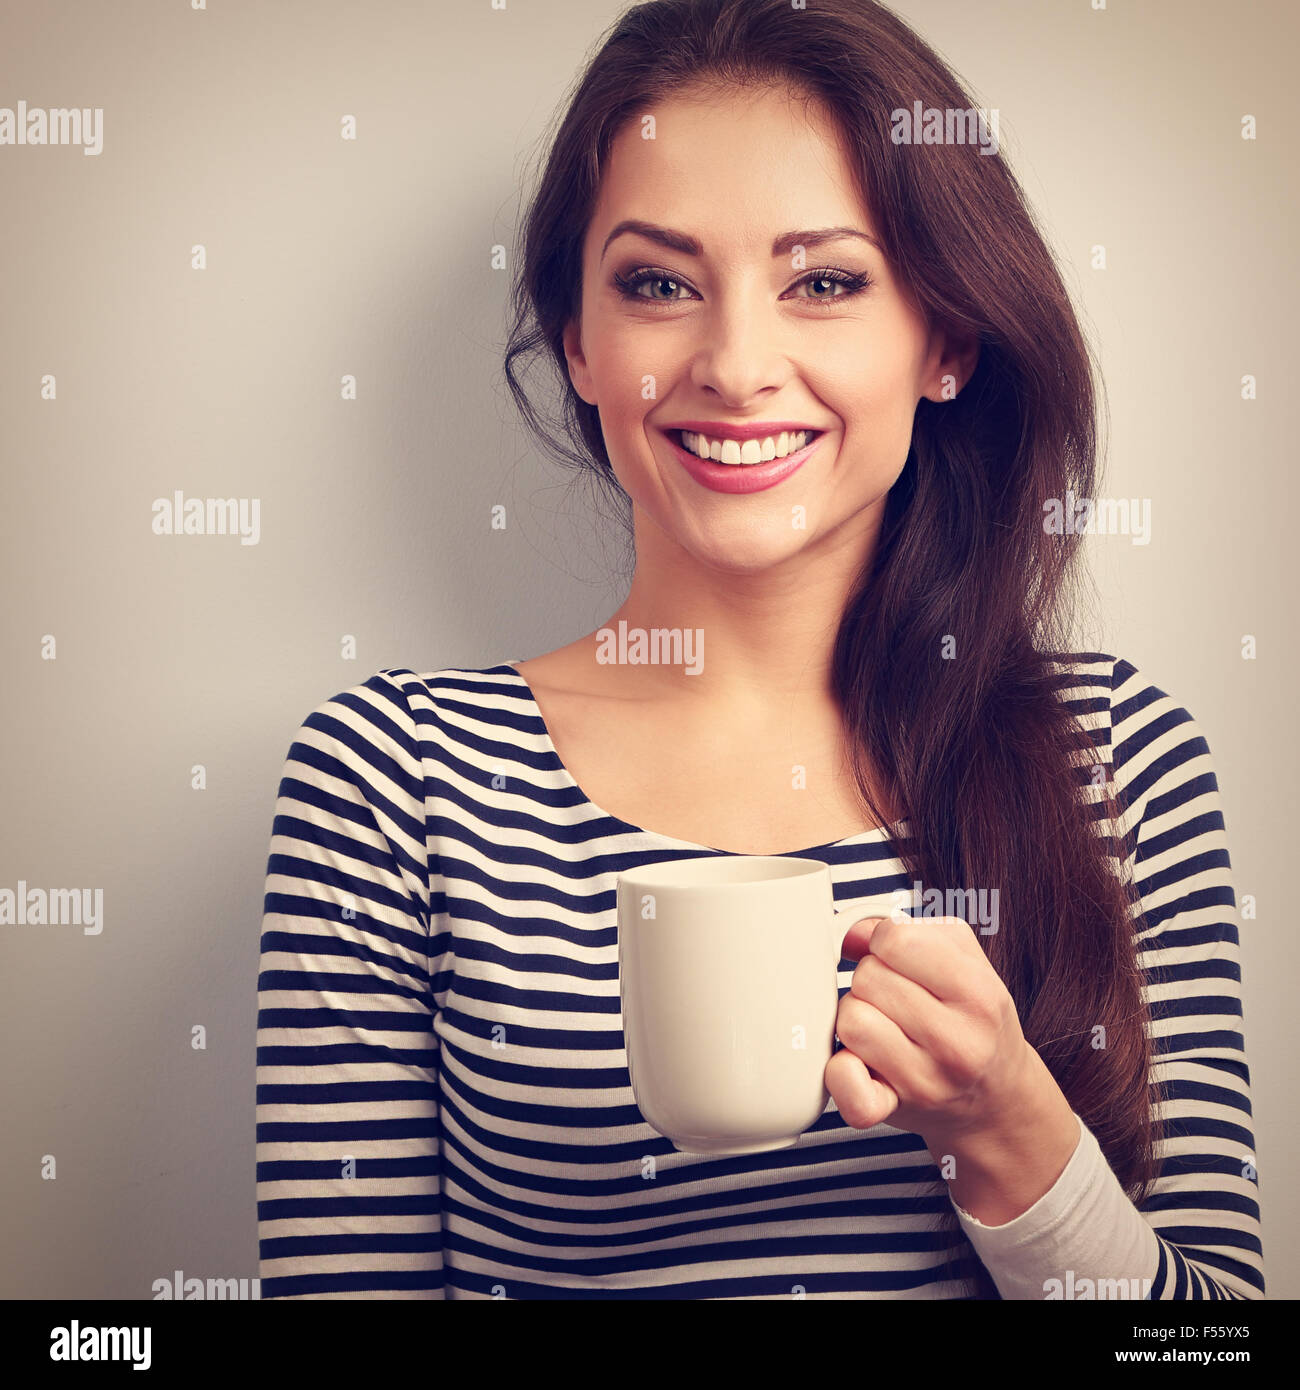 Happy young woman smiling casual dentelée avec une tasse de thé. Vintage closeup portrait Photo Stock